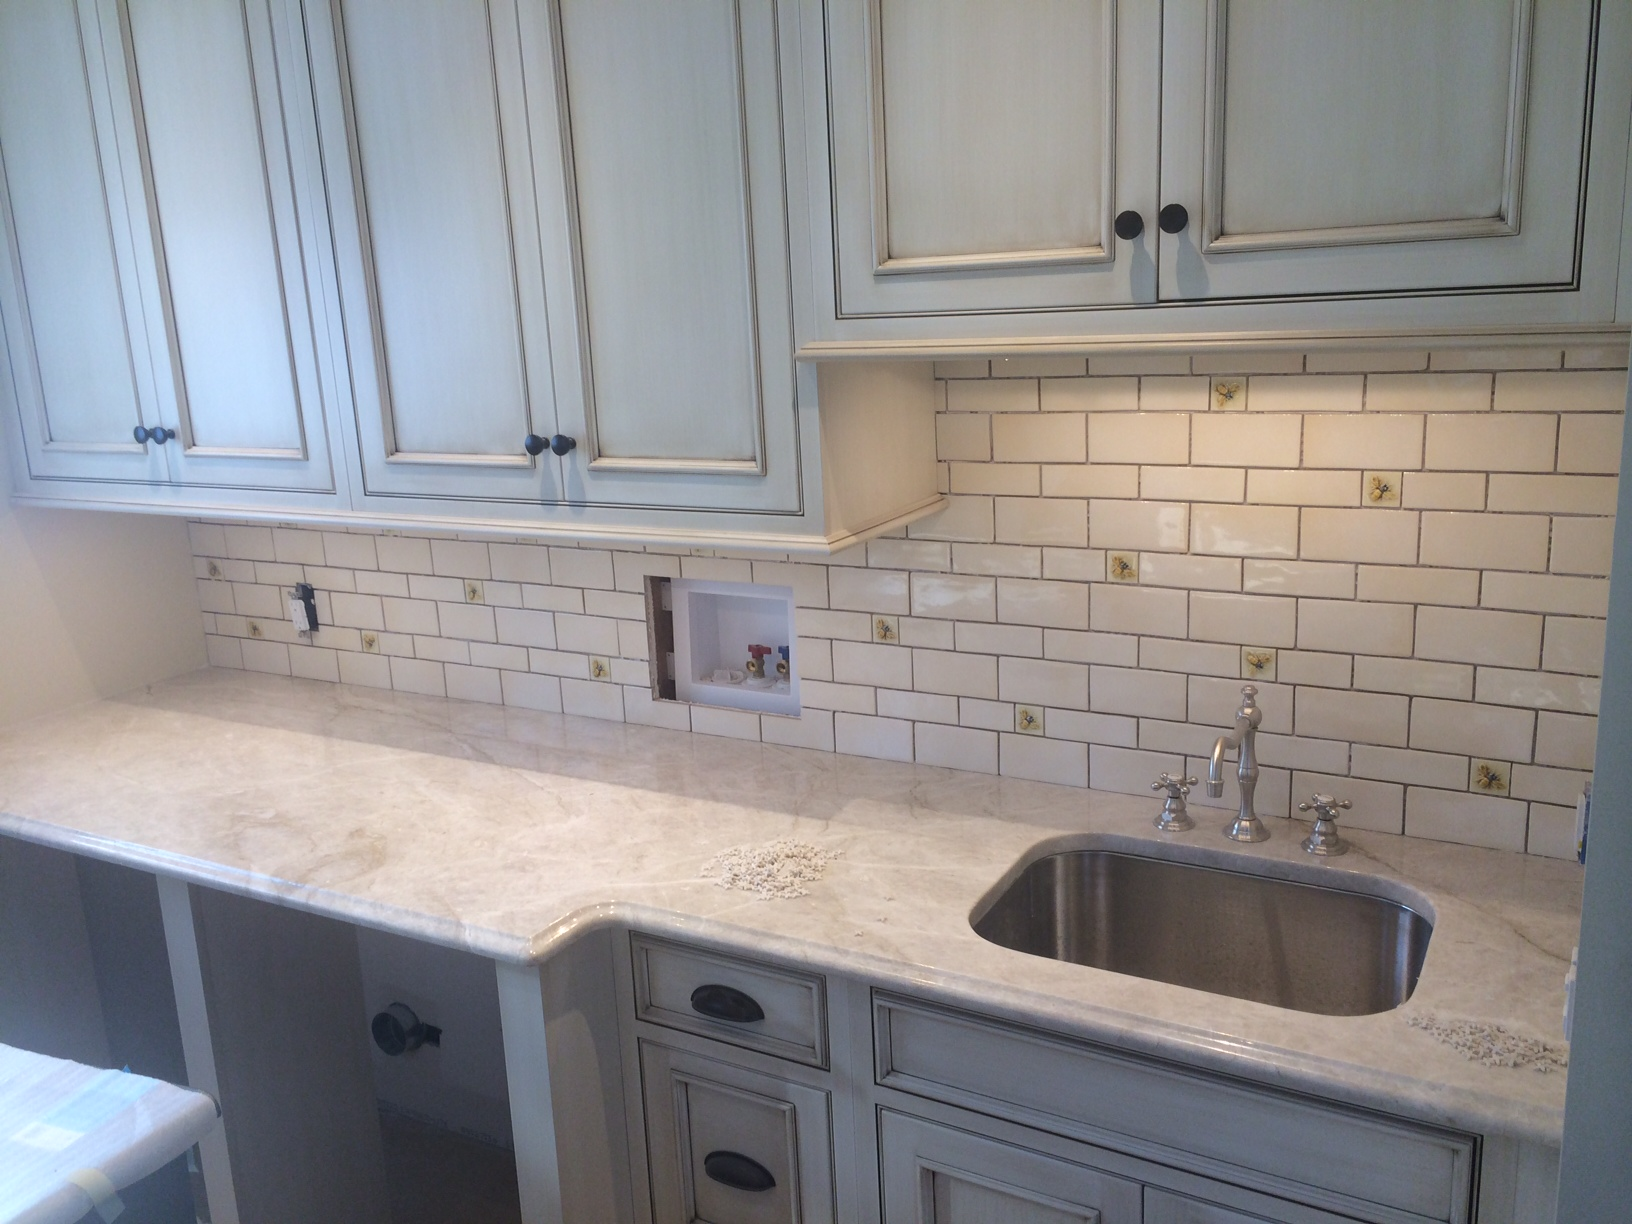 Inspiring Decorative Accents Pantry And Laundry Room Backsplash At The Tilery Your New England And Cape Cod Tile Experts